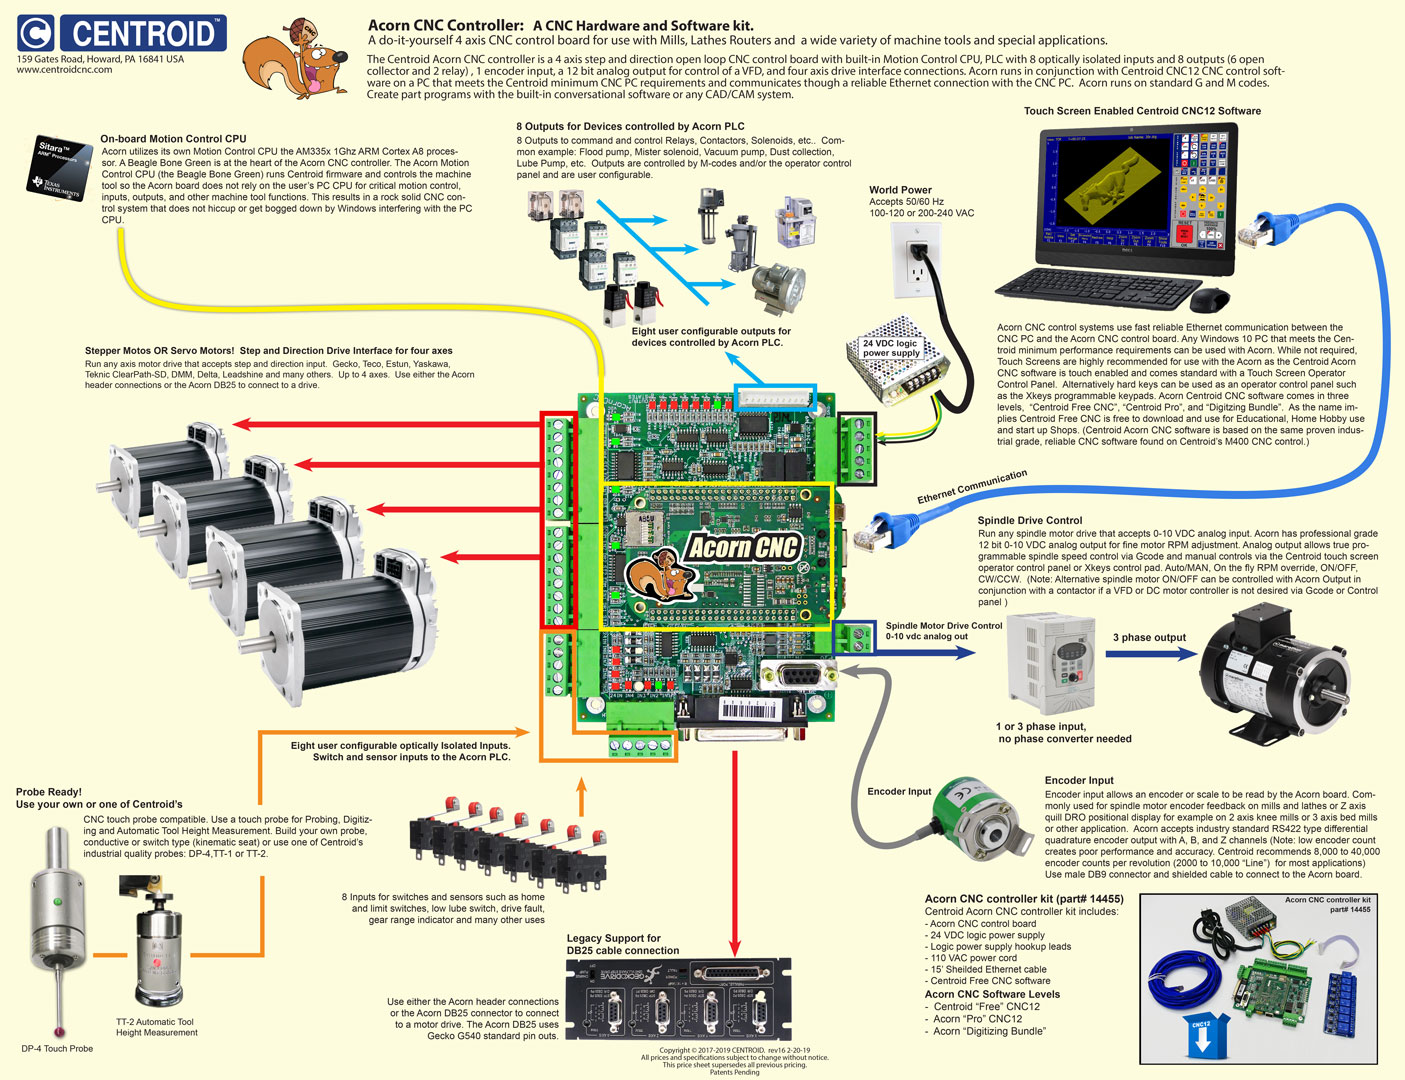 Acorn Cnc Controller Step And Direction 4 Axis Control Board Metal Lathe Wiring Diagram Overview